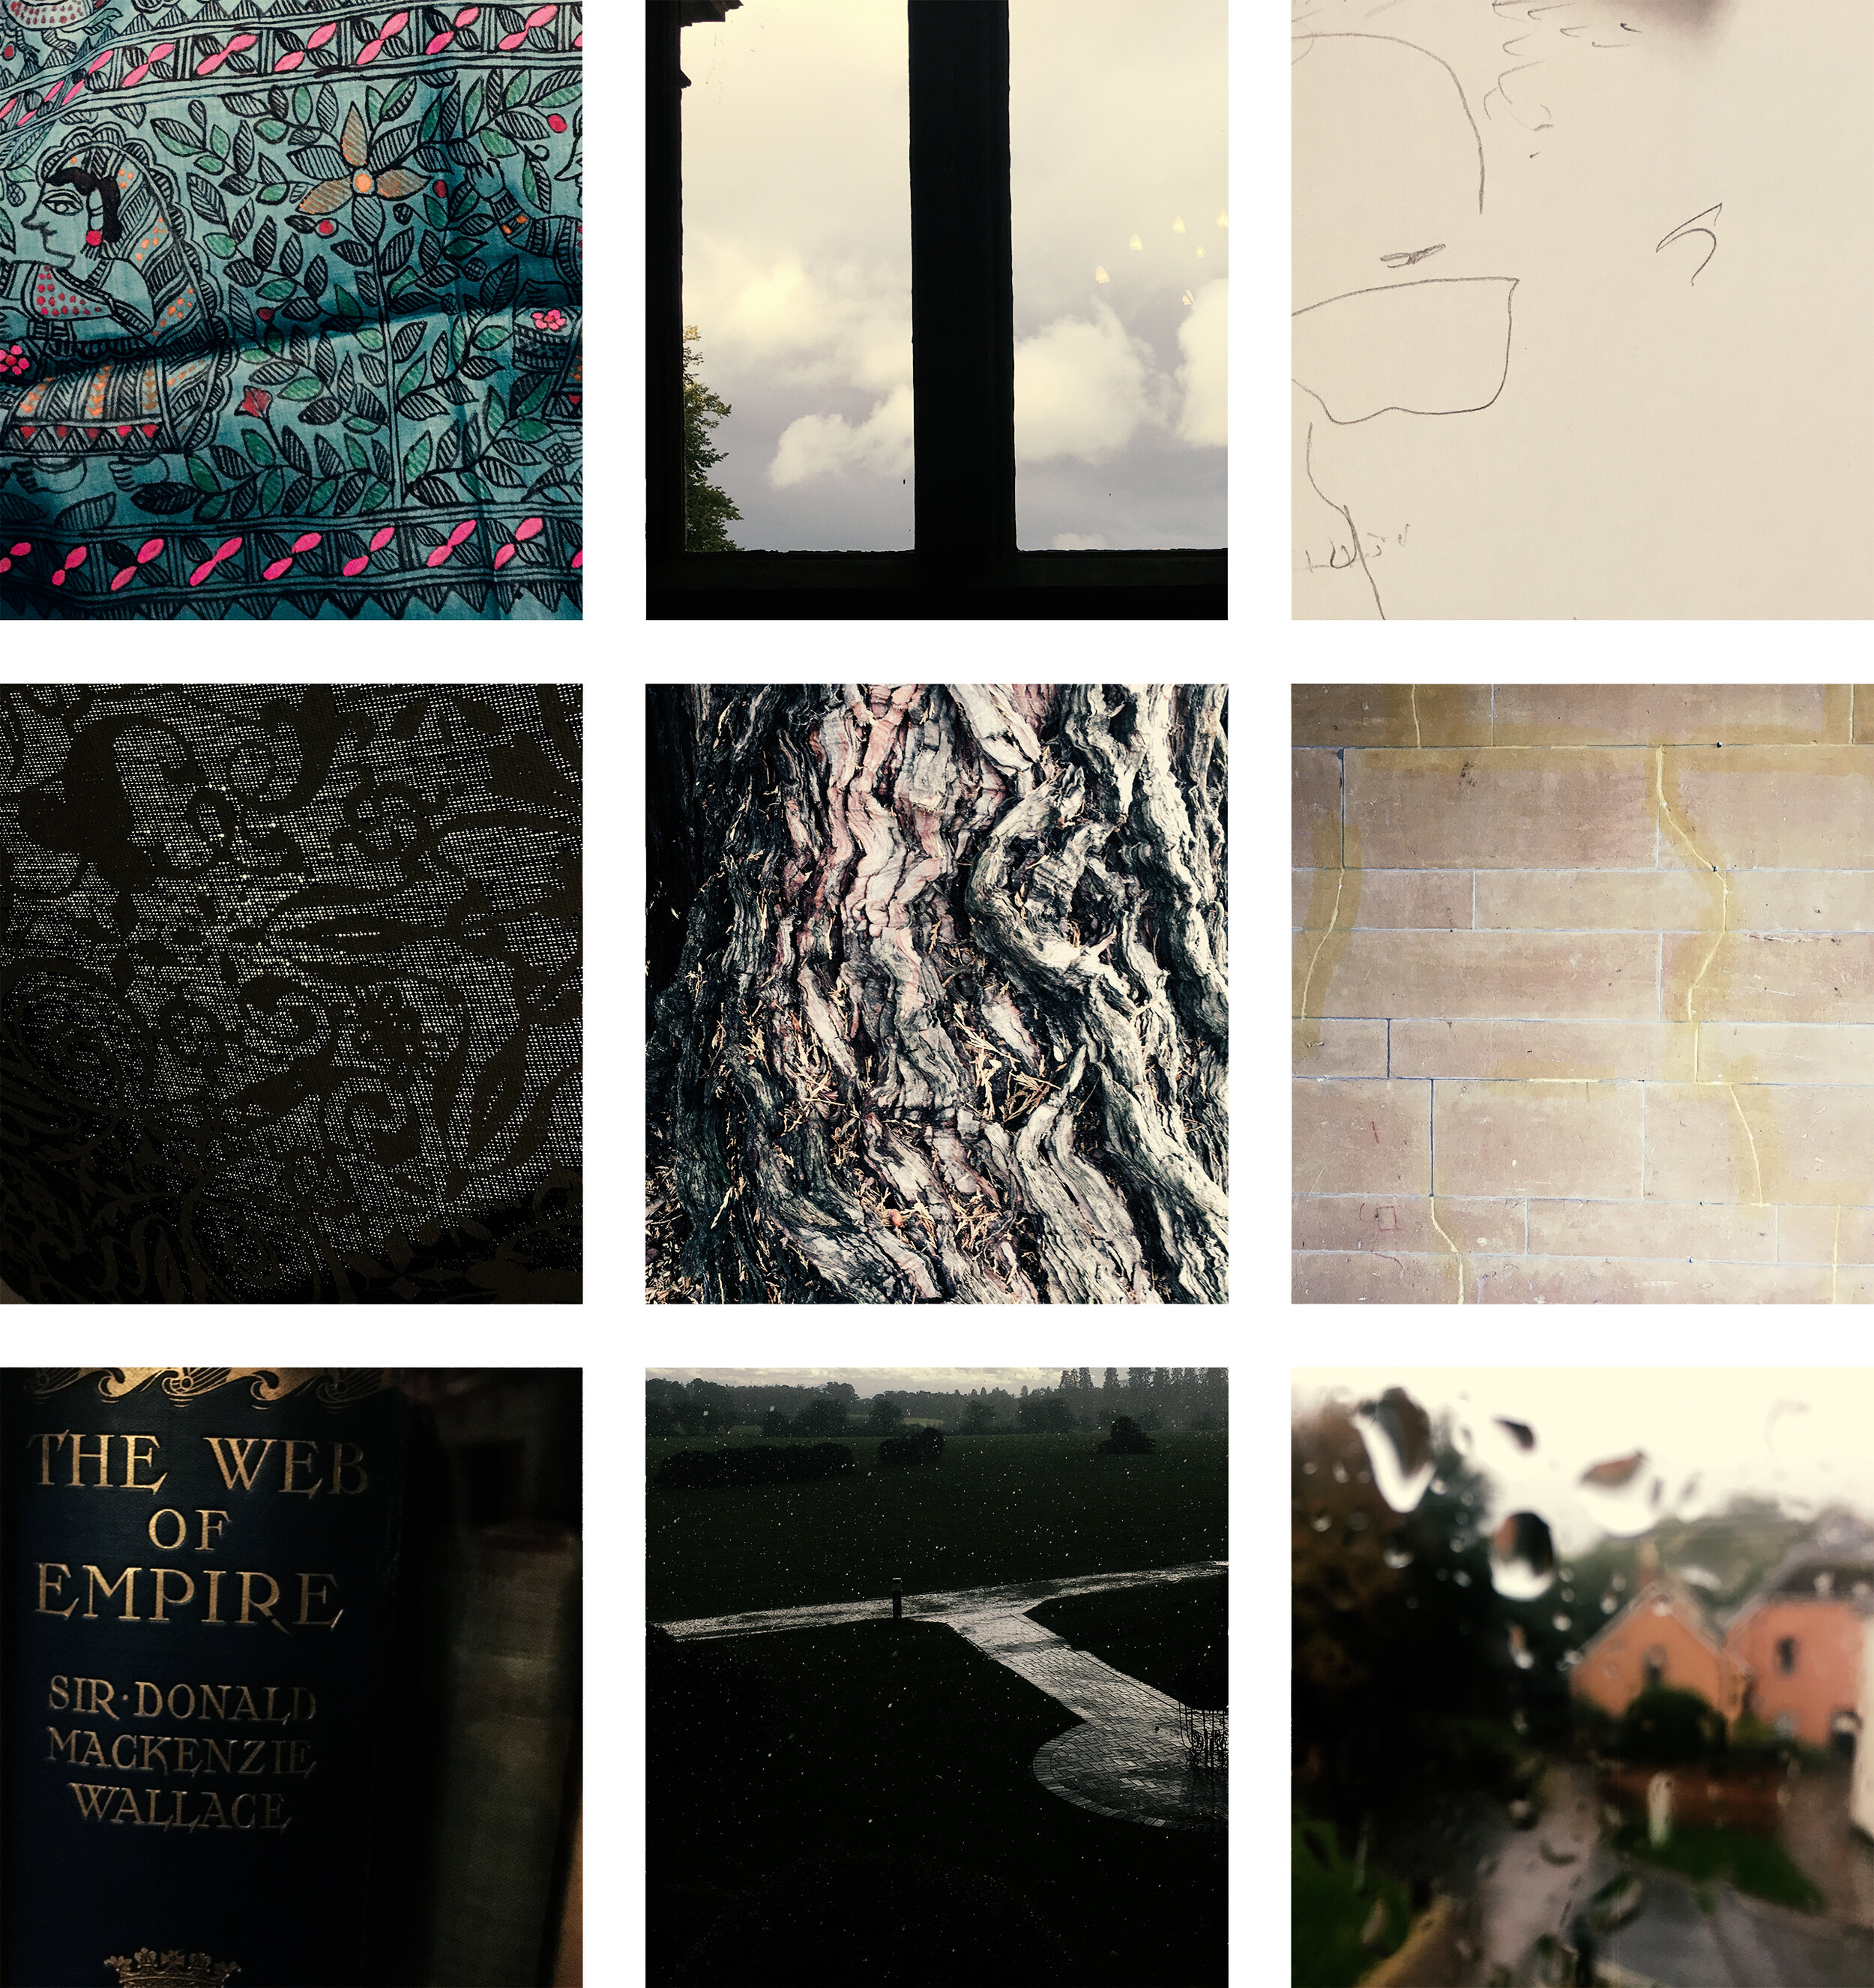 Images: Textile artwork from MITHILAsmita, displayed and described by      Ihitashri Shandilya      (top left); View out of window of Eynsham Hall, Oxfordshire (top centre); Unsighted drawing of      Eduardo Carvalho      of Brazil's      Museum of Tomorrow      (top right); Pattern, Eynsham Hall (centre left); Redwood, Eynsham Hall (centre); Wall, Eynsham Hall (centre right); The Web of Empire, Sir Donald Mackenzie Wallace (1902) (lower left); View of rain, Eynsham Hall (lower centre); View of rain, Eynsham Hall (lower right)